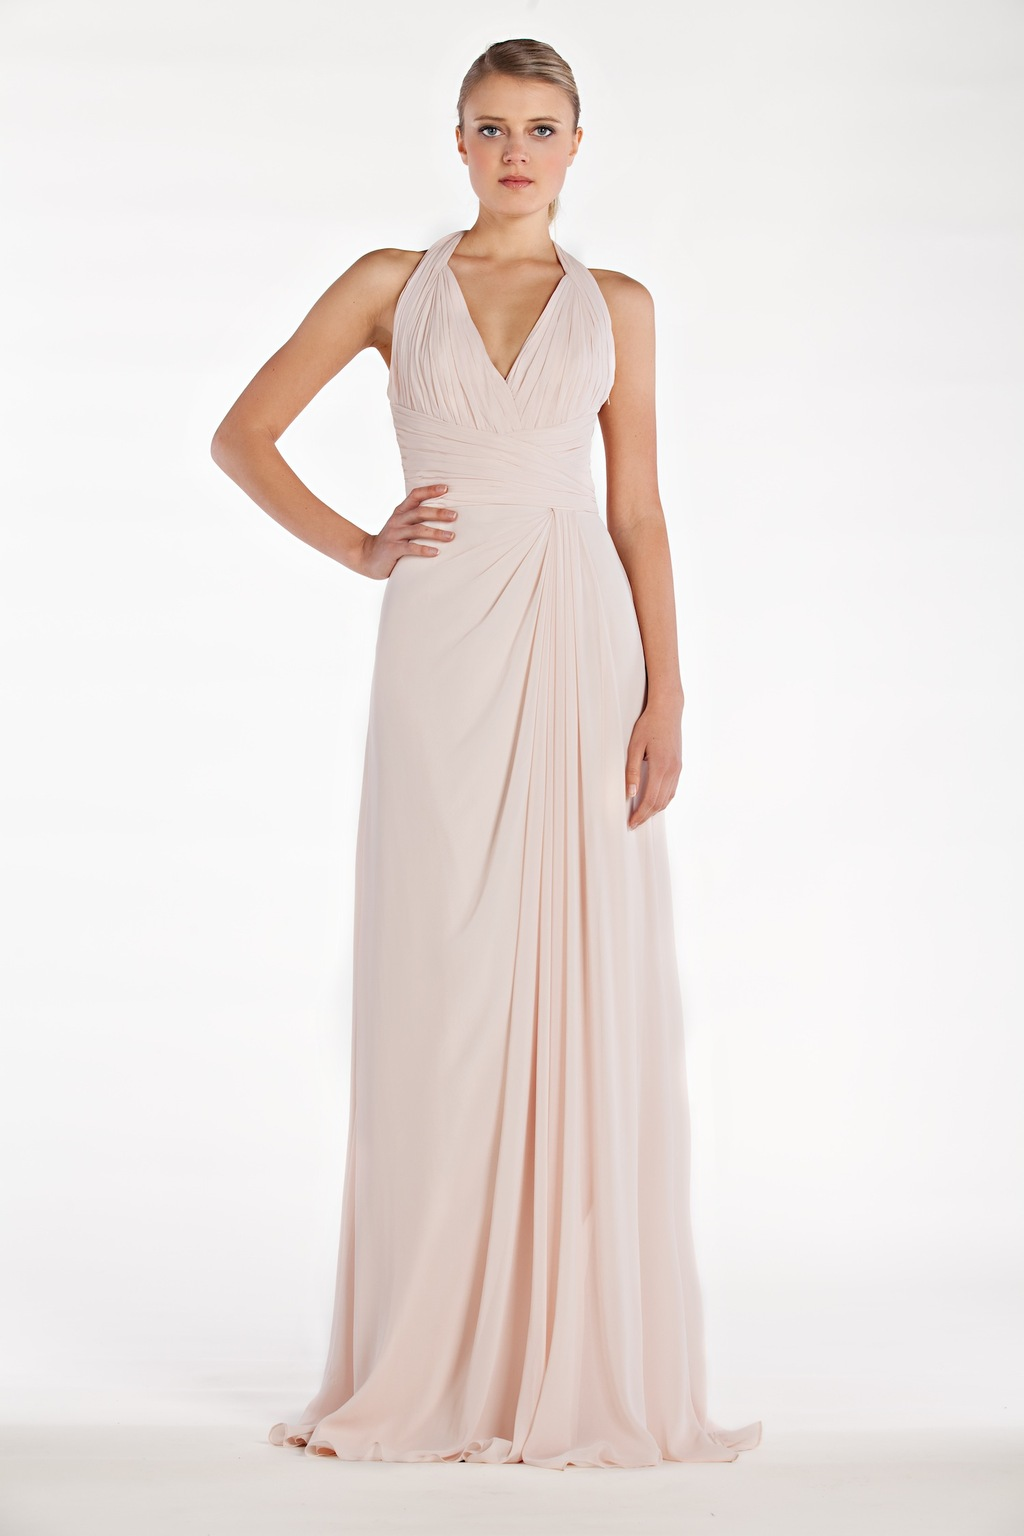 Blush_bridesmaids_gown_from_monique_lhuillier.full